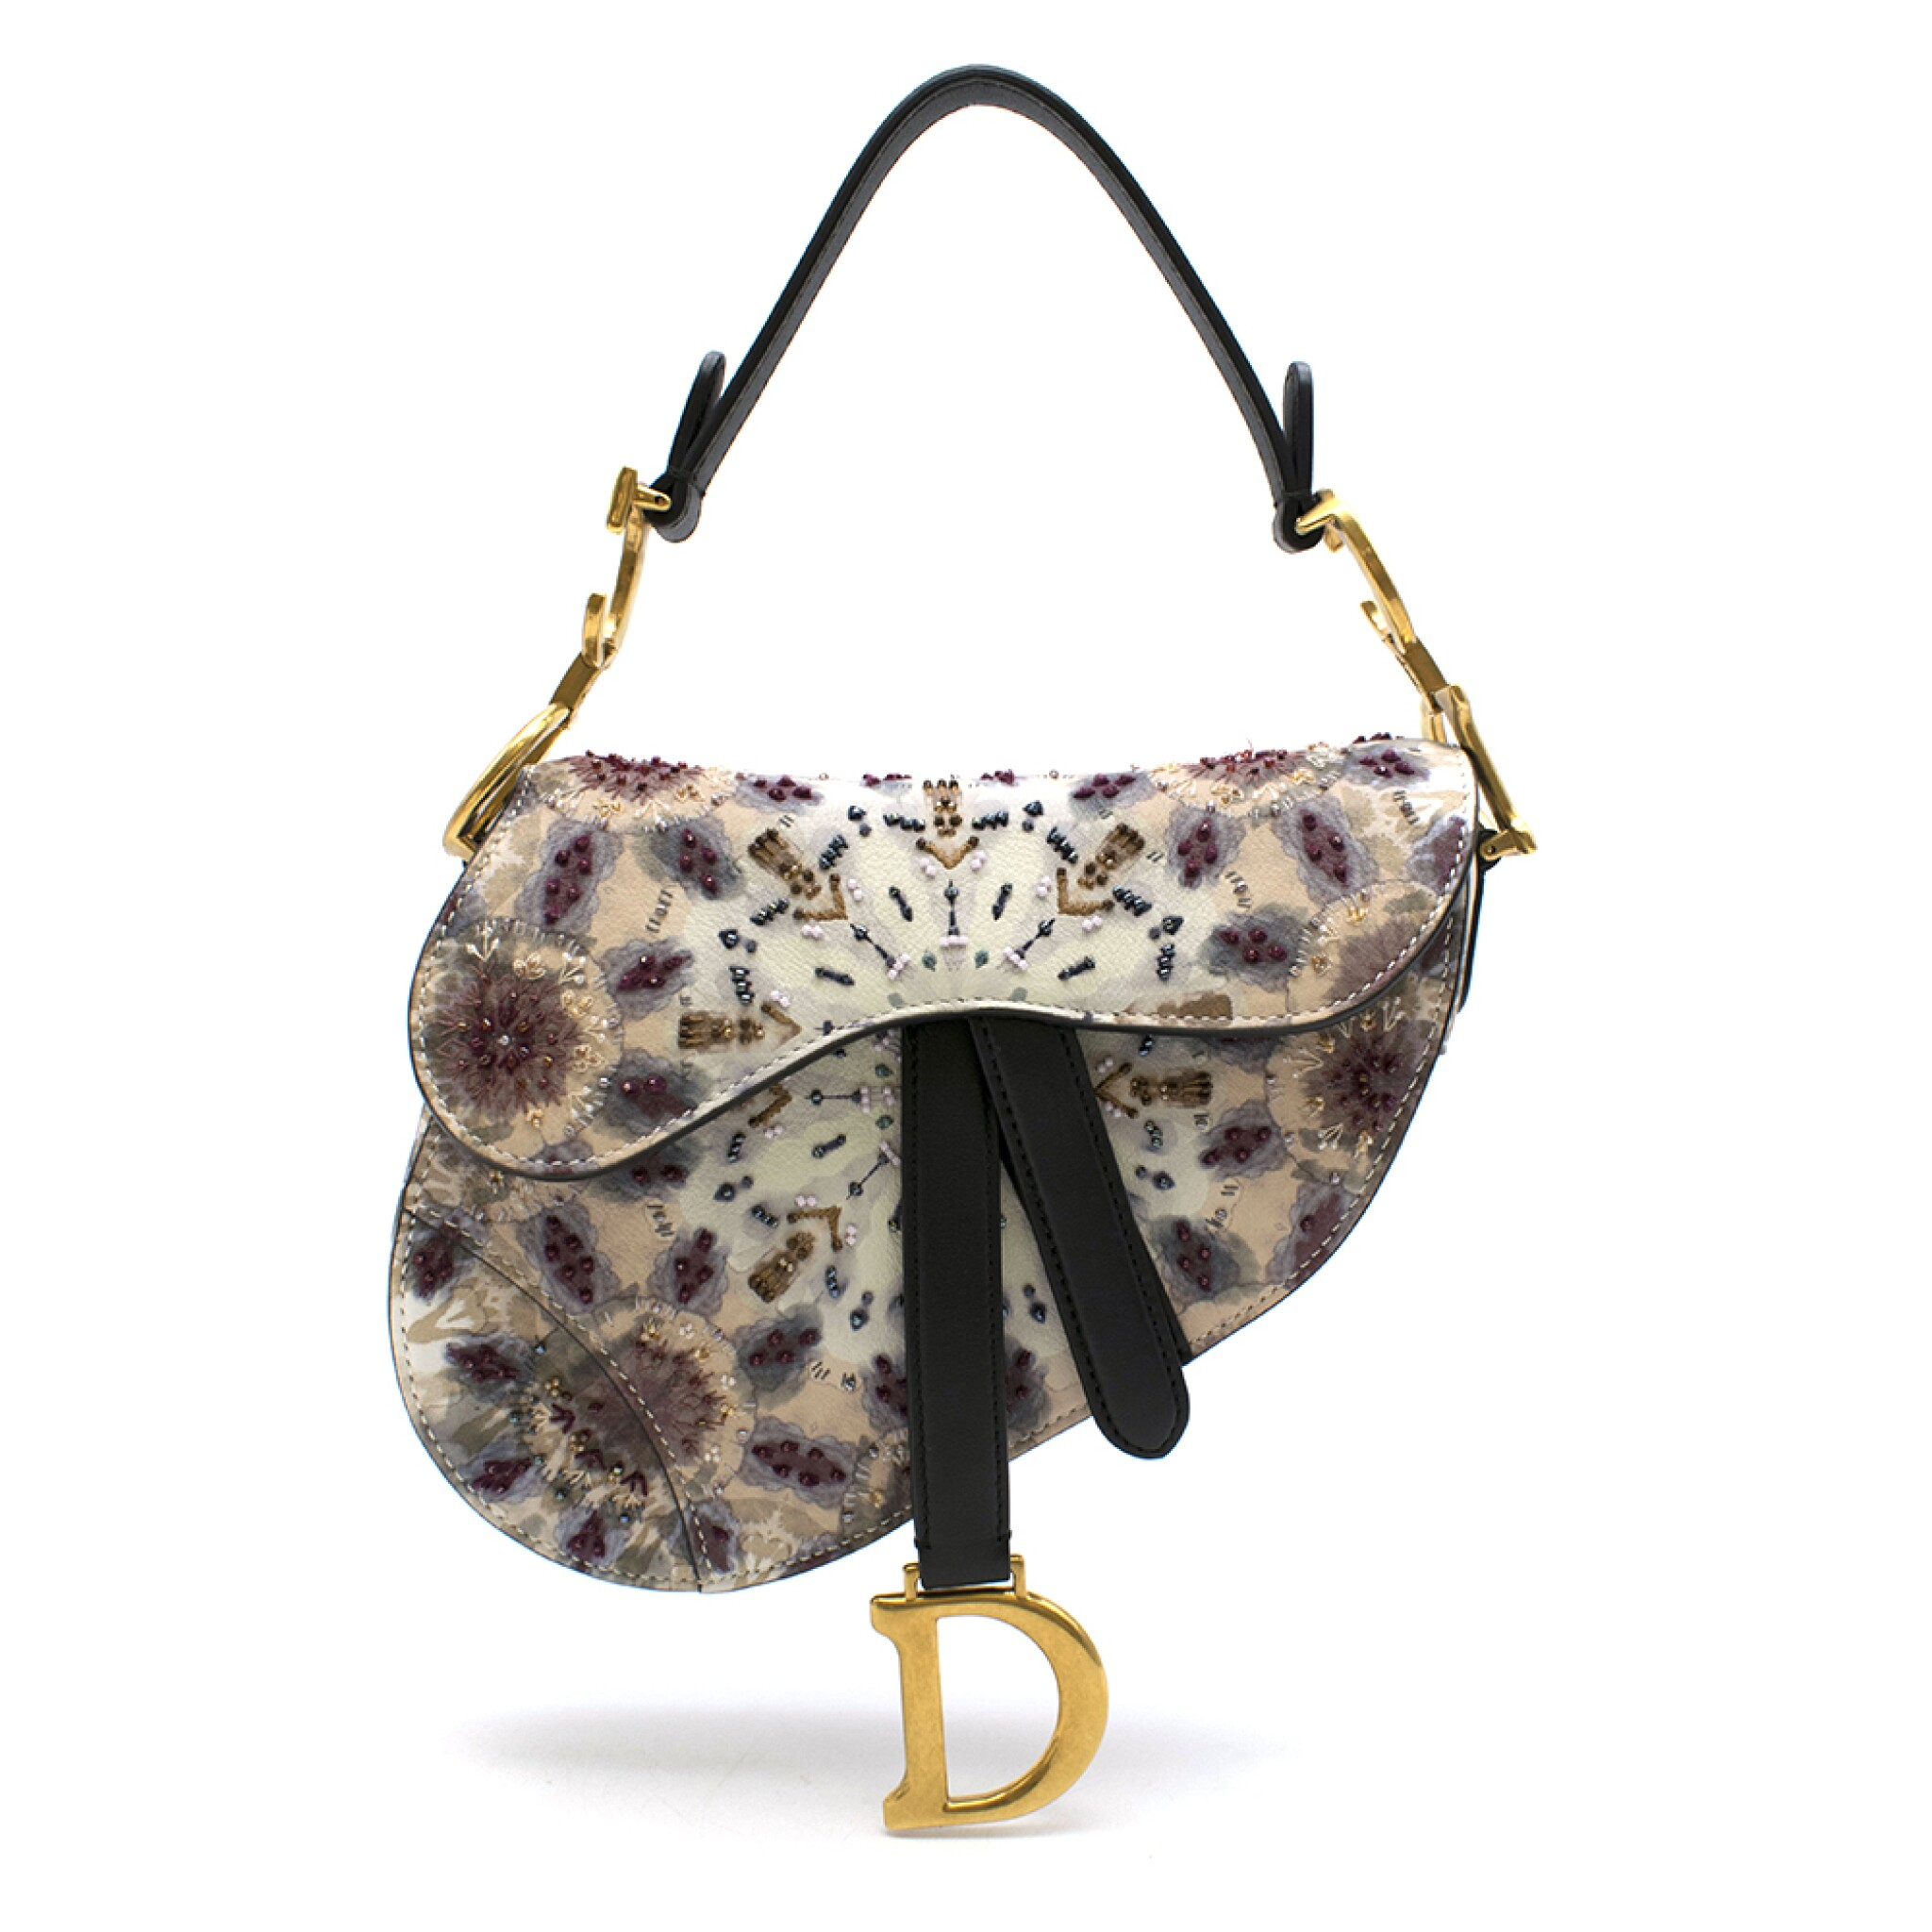 View full screen - View 1 of Lot 21. DIOR | HANDPAINTED AND BEADED MINI SADDLE BAG FROM THE KALEIDIORSCOPIC COLLECTION IN CALFSKIN WITH GOLD TONE HARDWARE, 2019.